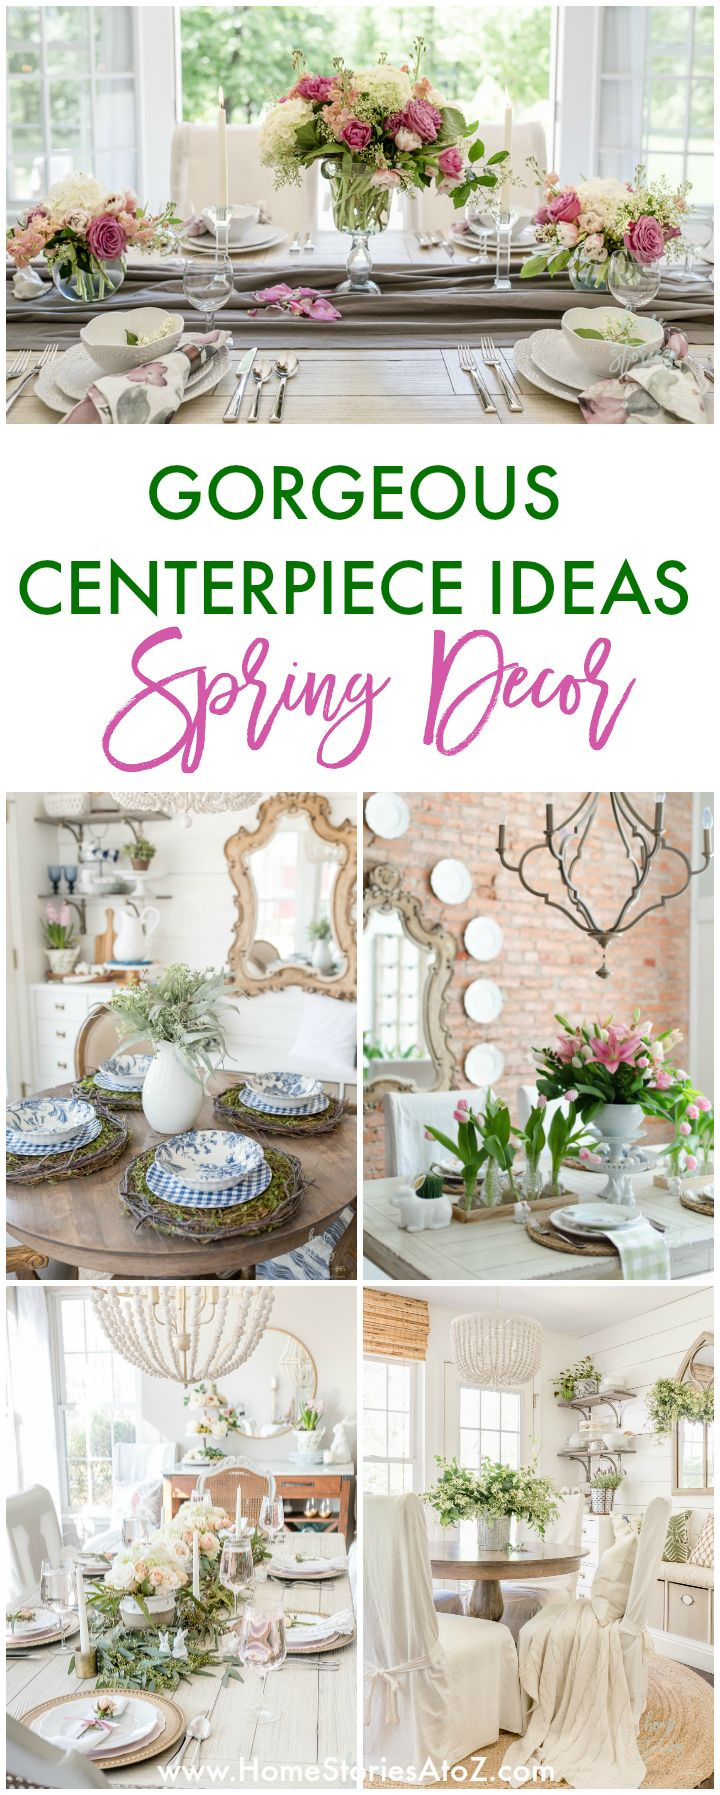 Pin On Rustic Table Centerpieces For Home Ideas Candle Holders